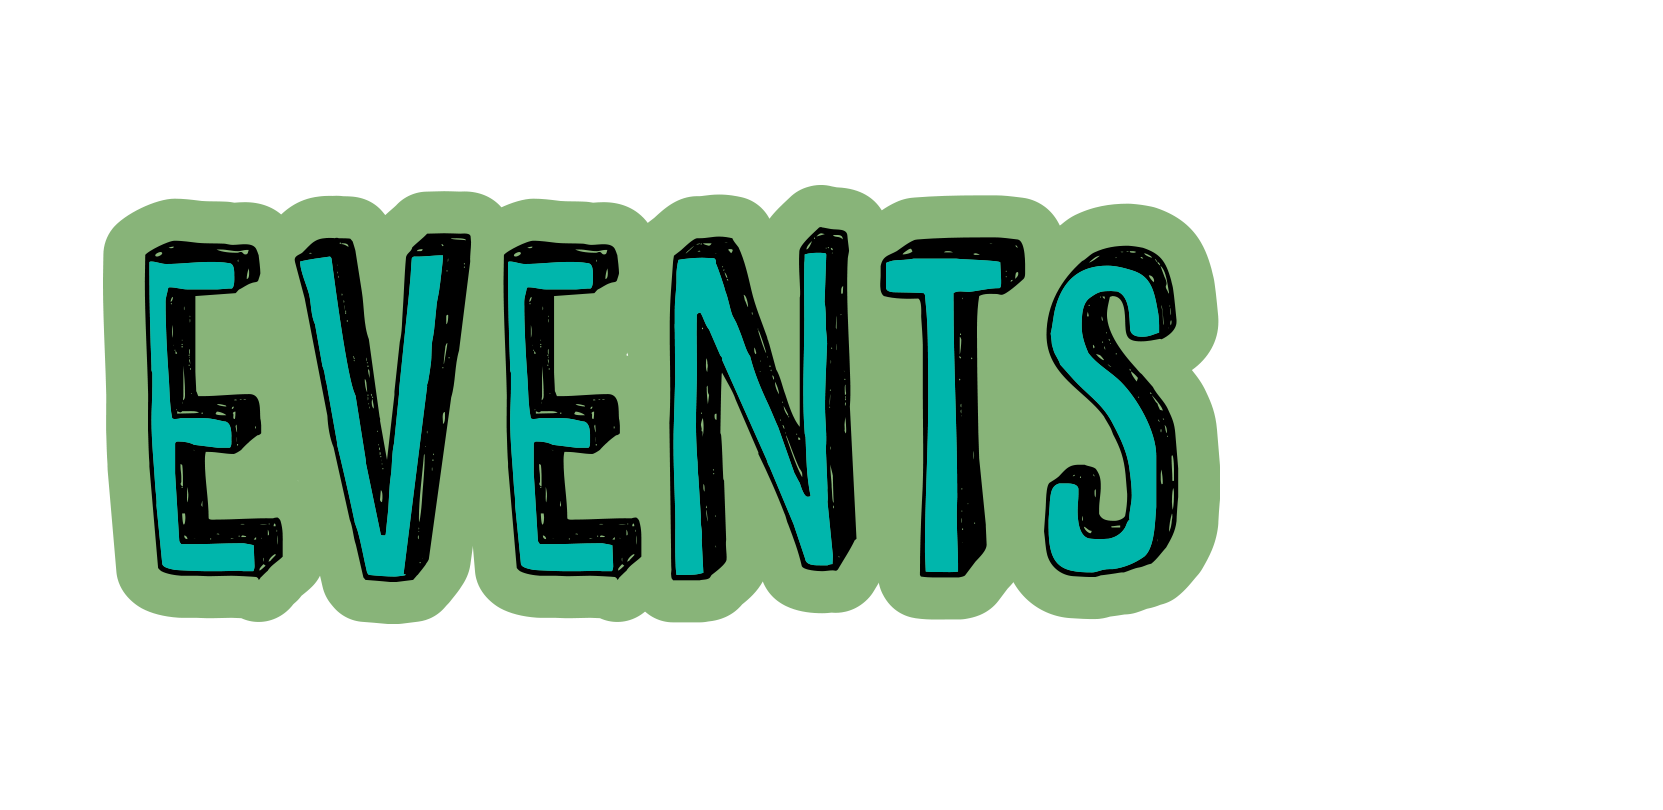 Greenfest Events